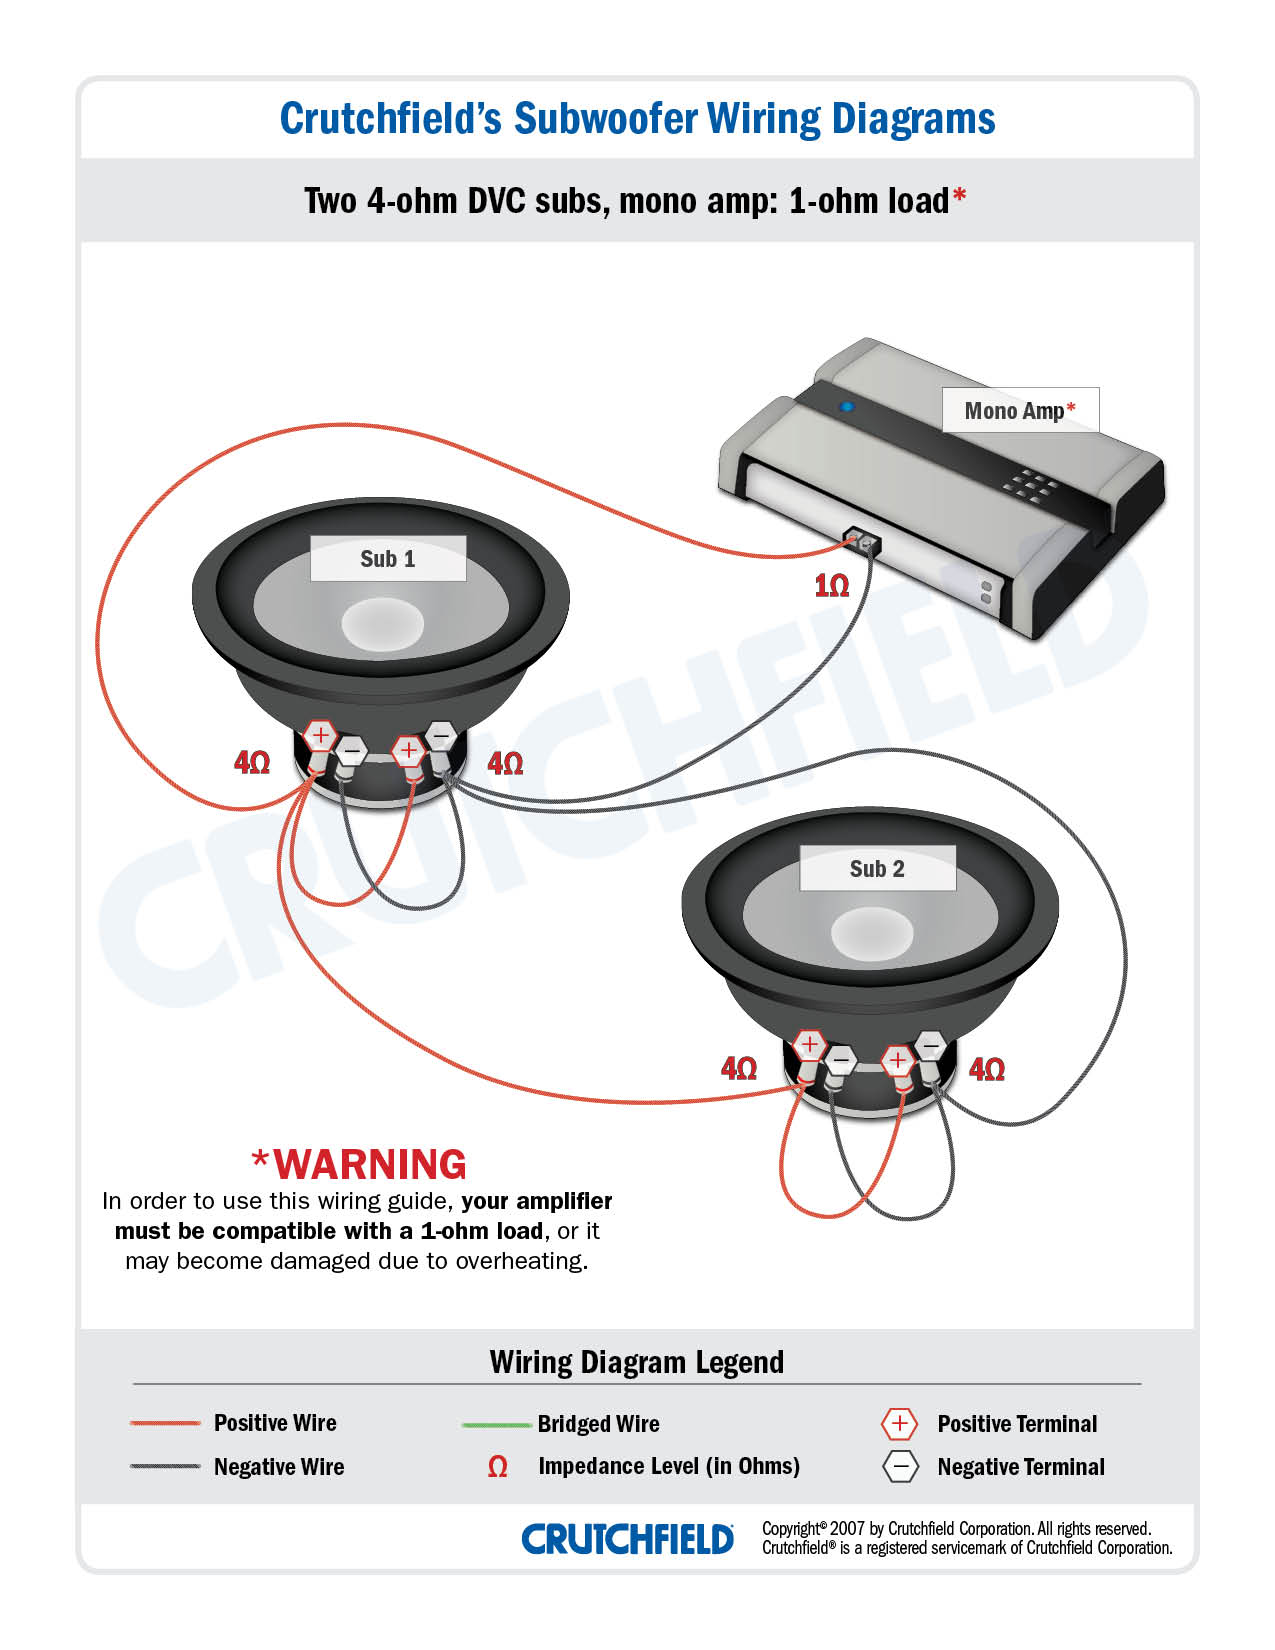 Subwoofer Wiring Diagrams How To Wire Your Subs Home Stereo Speaker The Two Speakers Being Wired In Parallel Cutting Total Impedance Half Bridging Channels Together Is Not Possible Dvc 4 Ohm Can Only